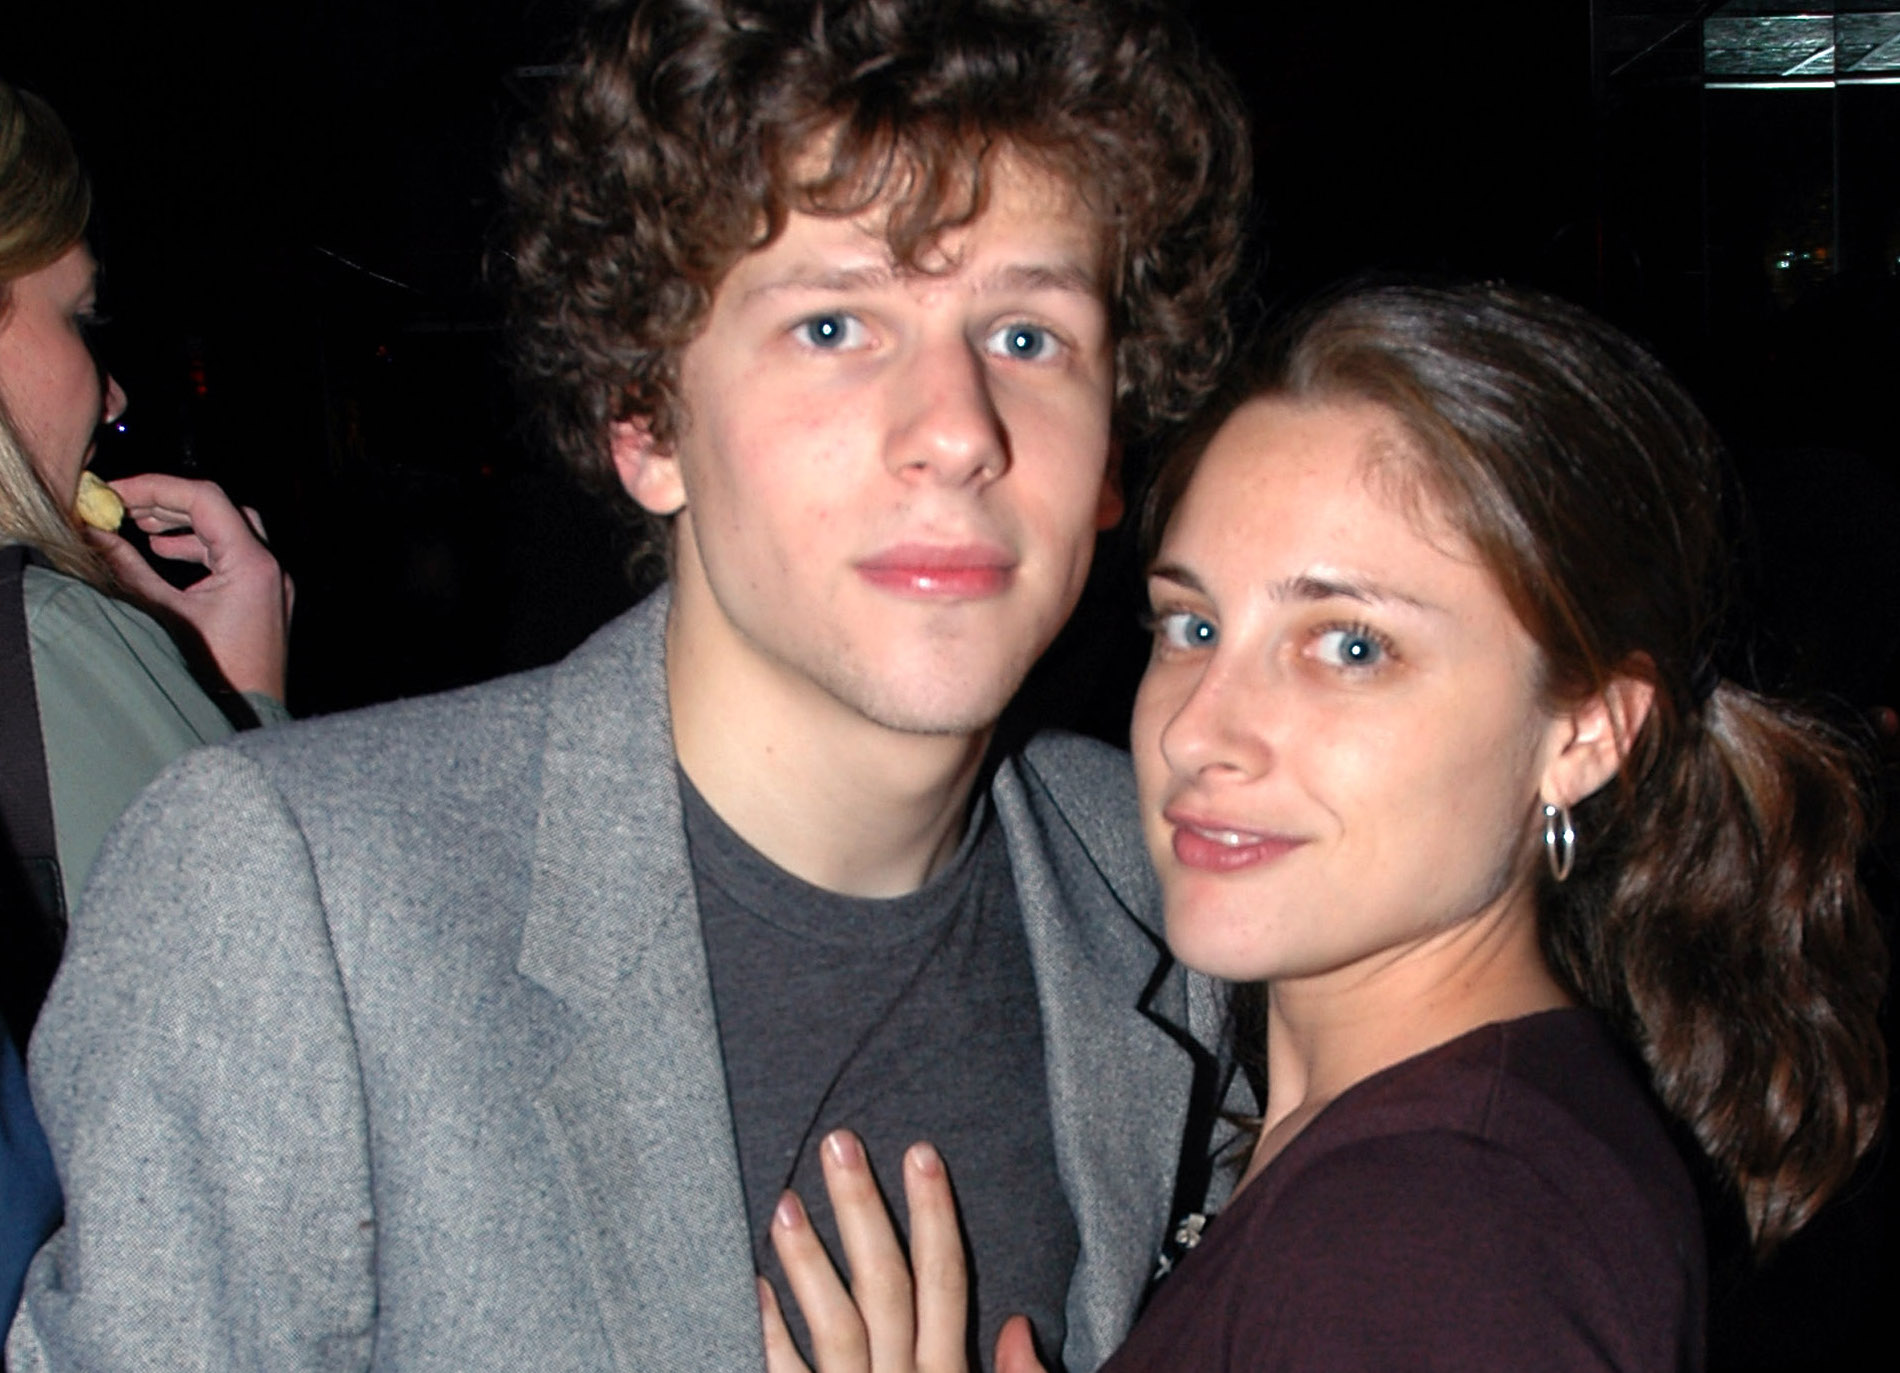 eisenberg and strout